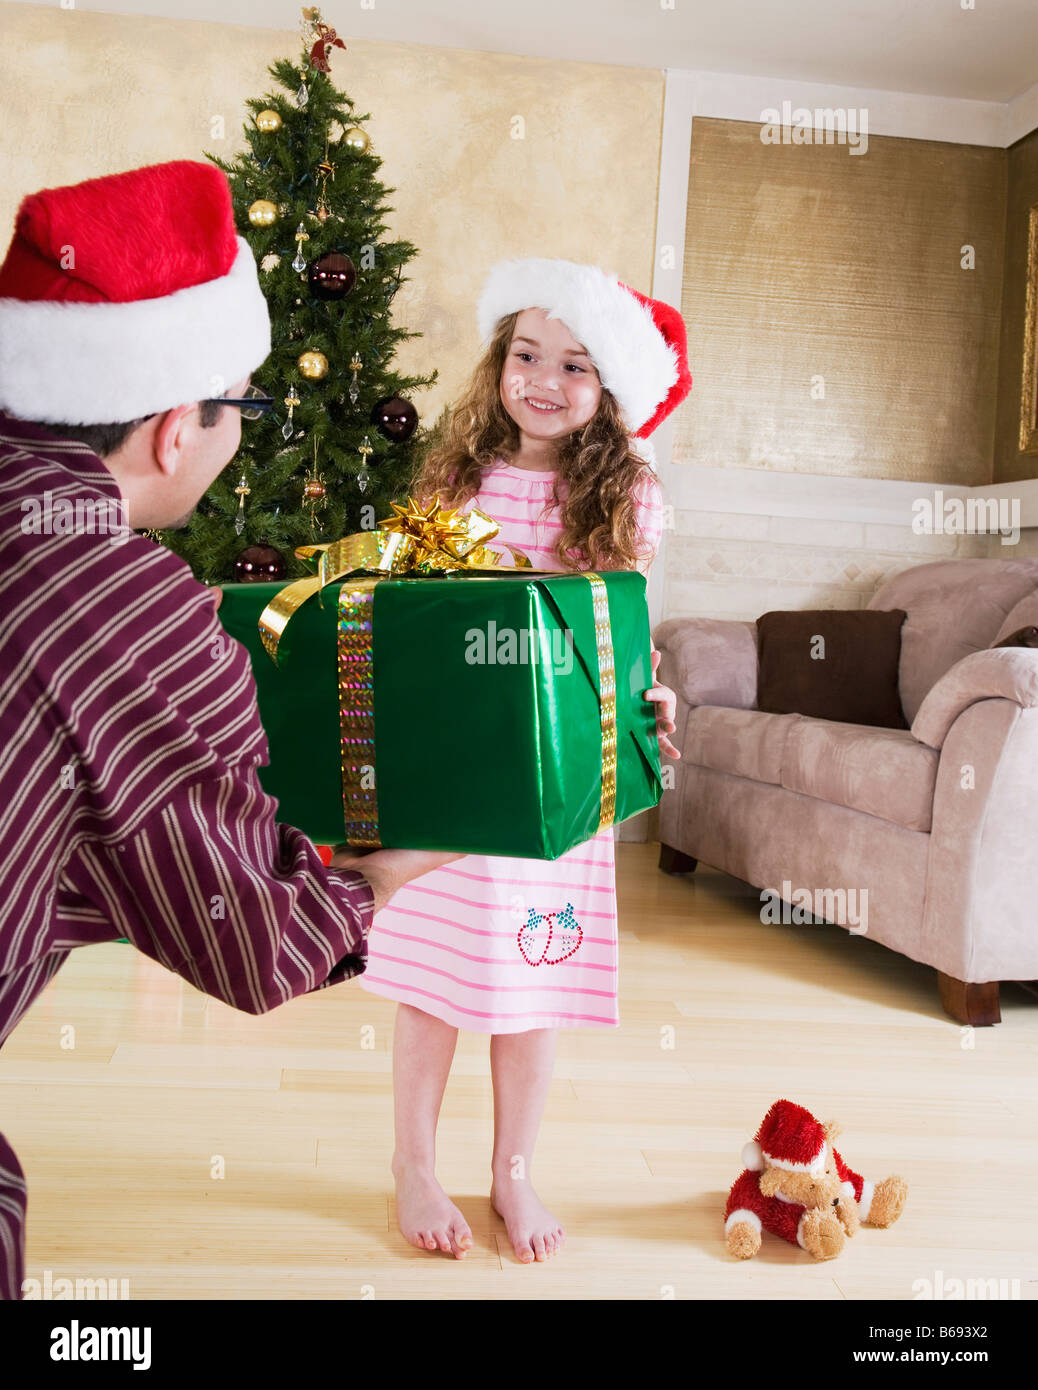 Father in Santa hat giving Christmas present to daughter (5-6) - Stock Image